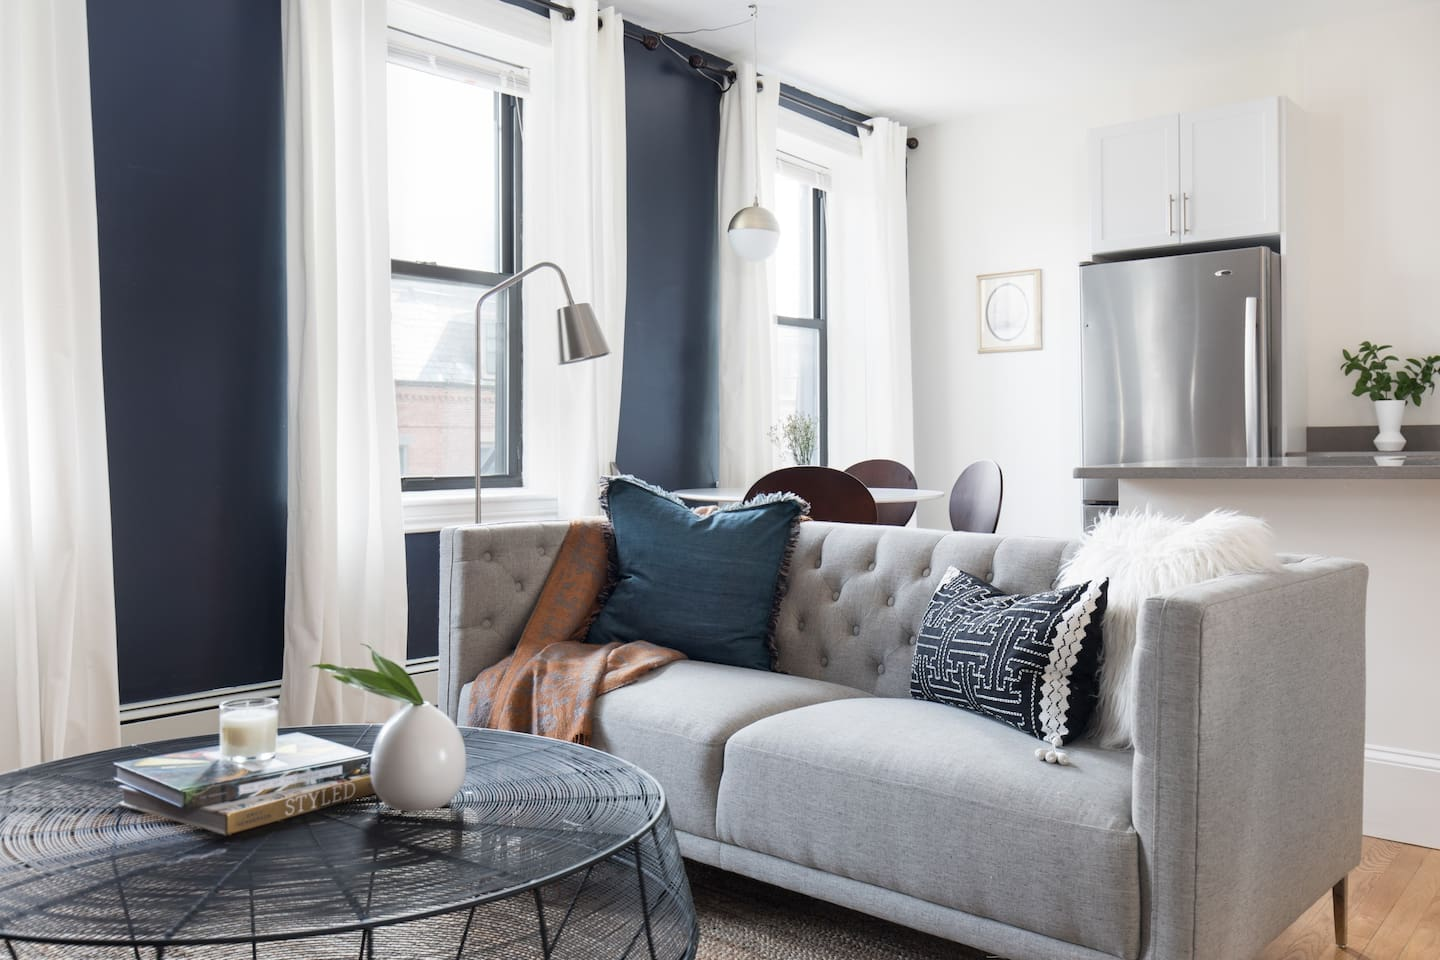 Hip 2BR in South End by Sonder - Apartments for Rent in Boston ...